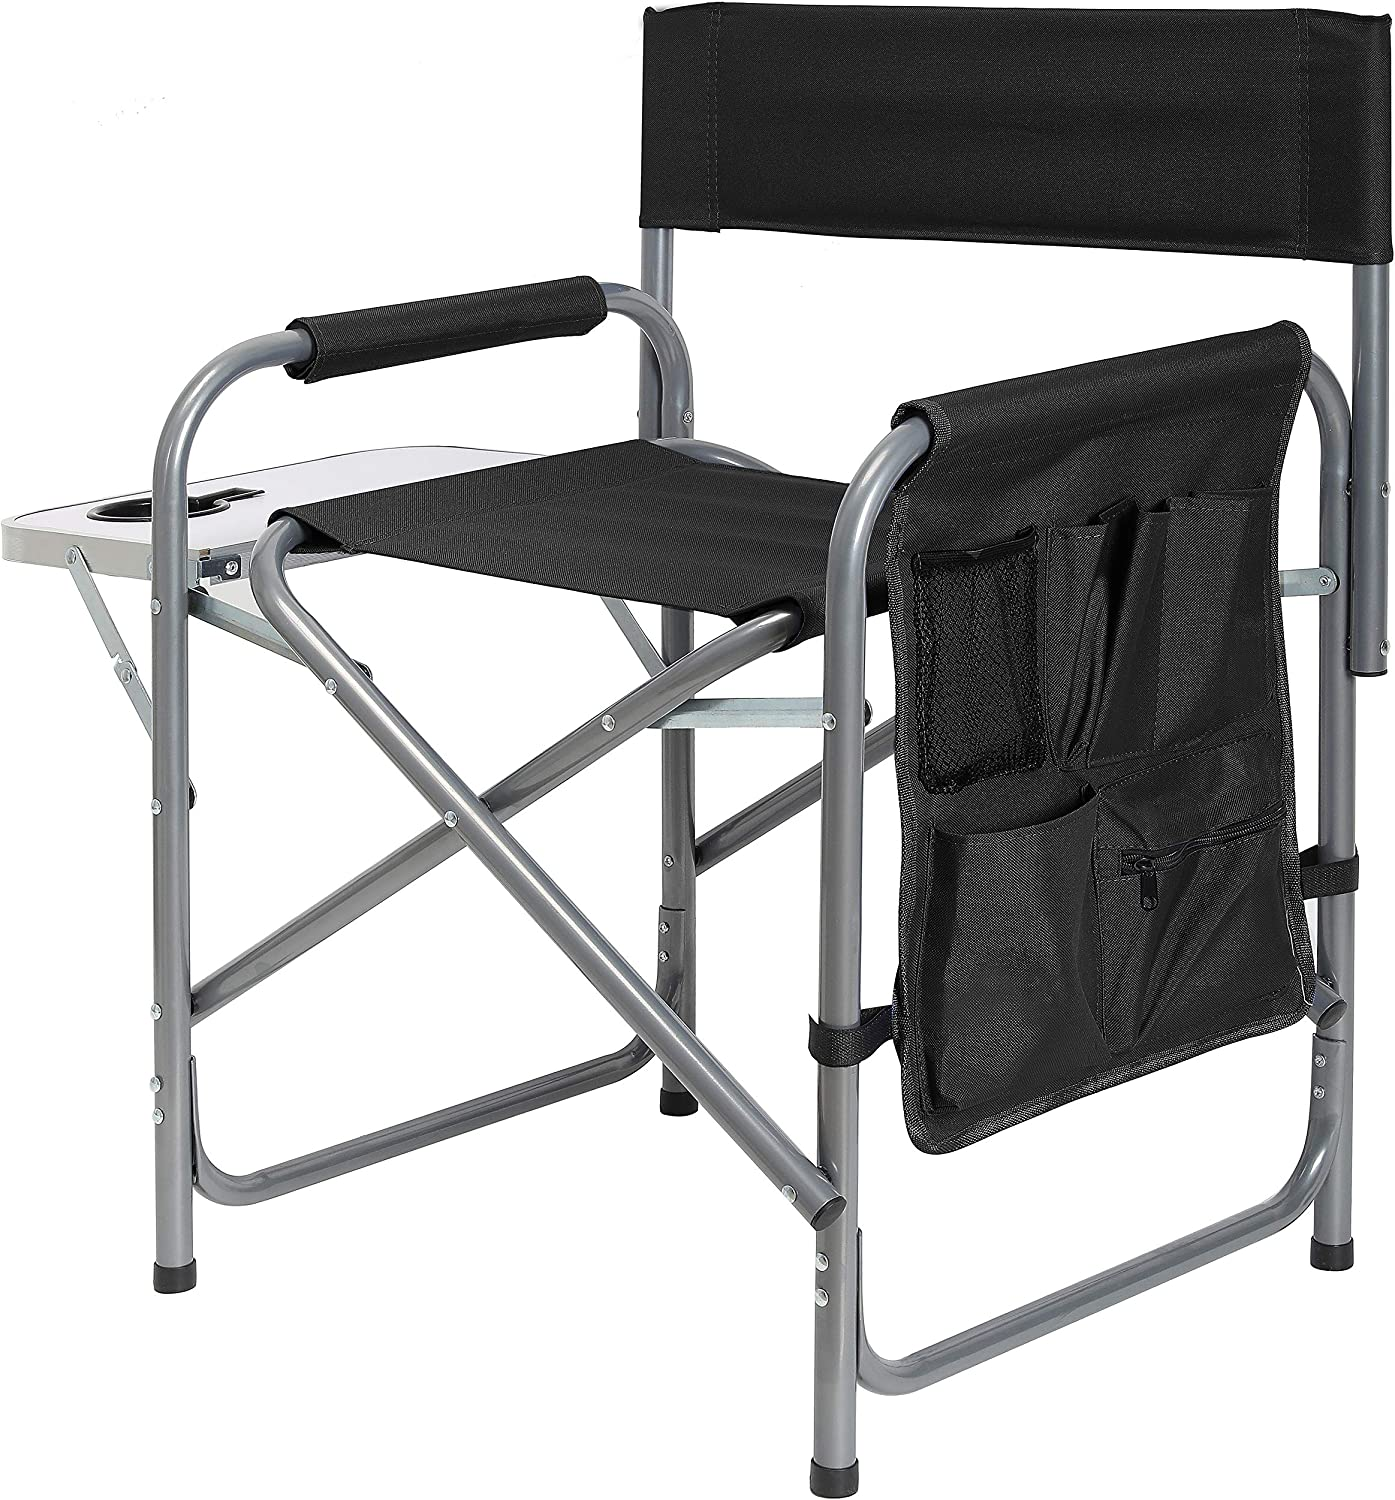 Ubon Steel Frame Portable Director's Chair - Ultra-Wide & Lightweight Seat with Collapsible Side Table & Pockets - Foldable Seat for Camping, Beach, Travel, Sports Games - 300lb Capacity - Dark Black : Sports & Outdoors